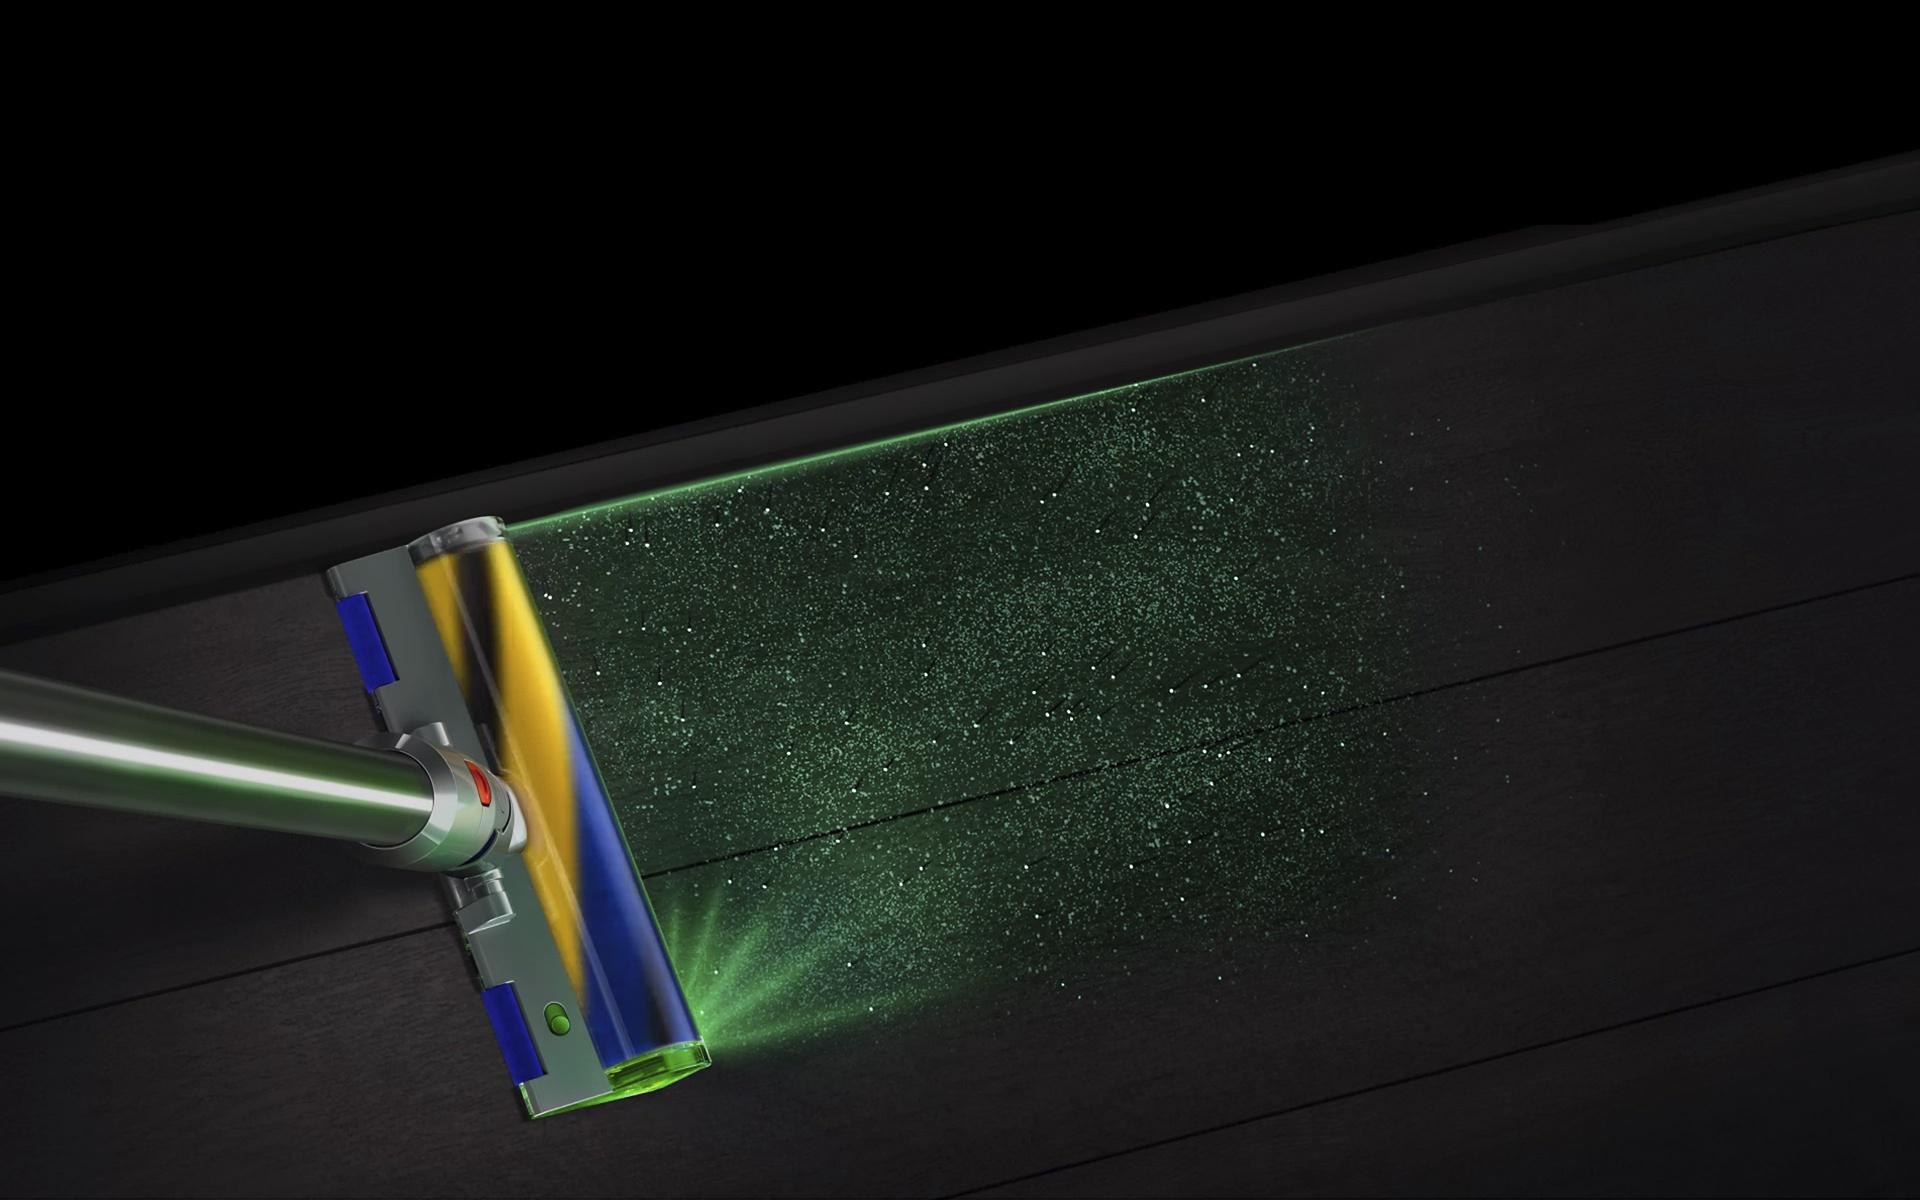 Laser detect technology cleaning along a wall